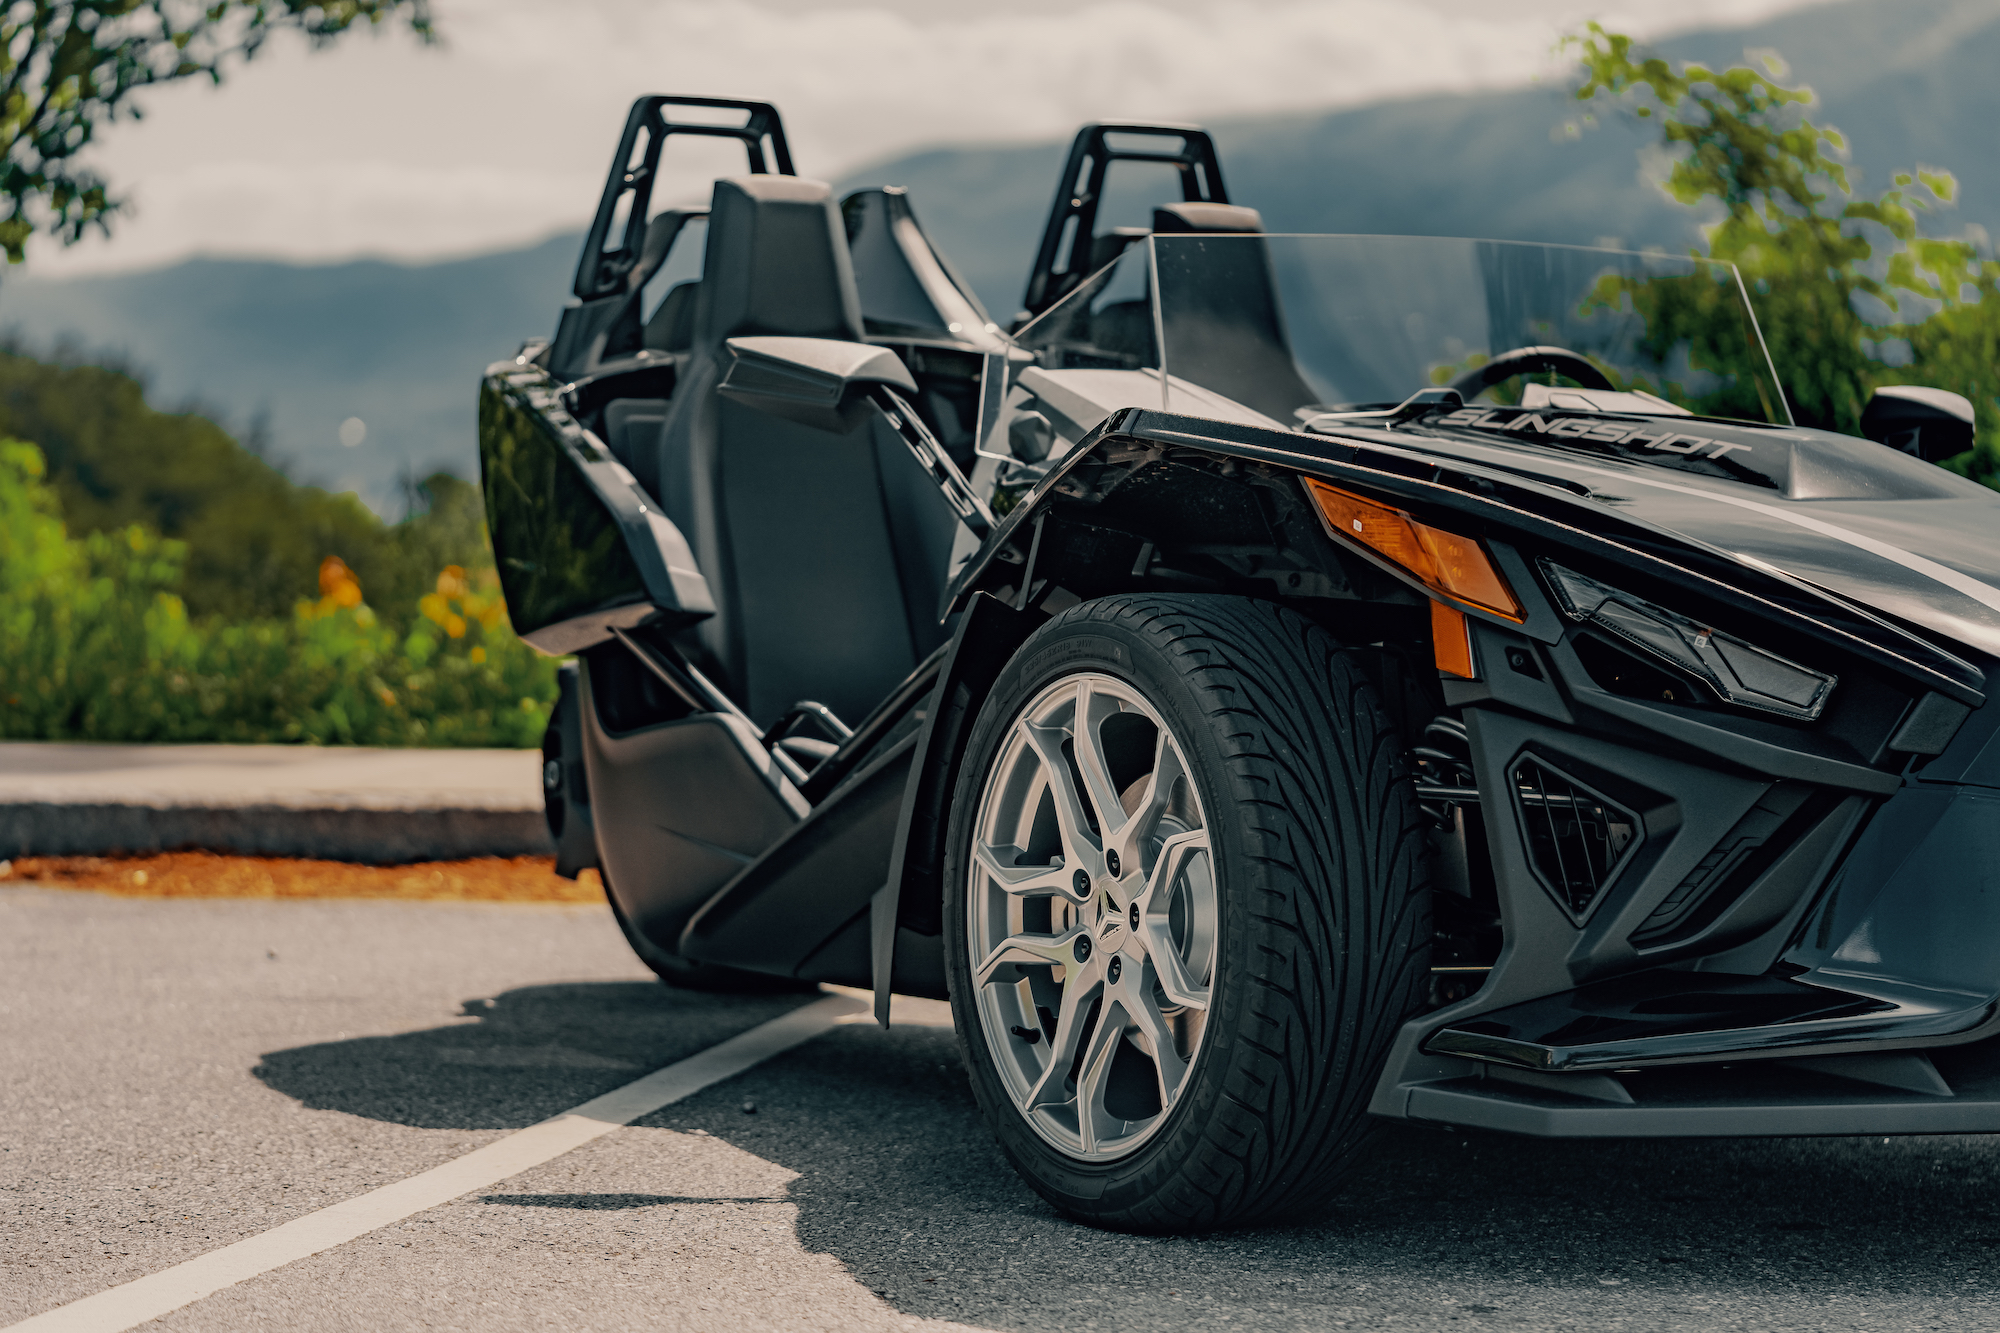 side cropped view of the Polaris Slingshot - Polaris Slingshots are available as rentals at the Mountain Mile Mall at Mountain Mile Adventures in Pigeon Forge, Tennessee